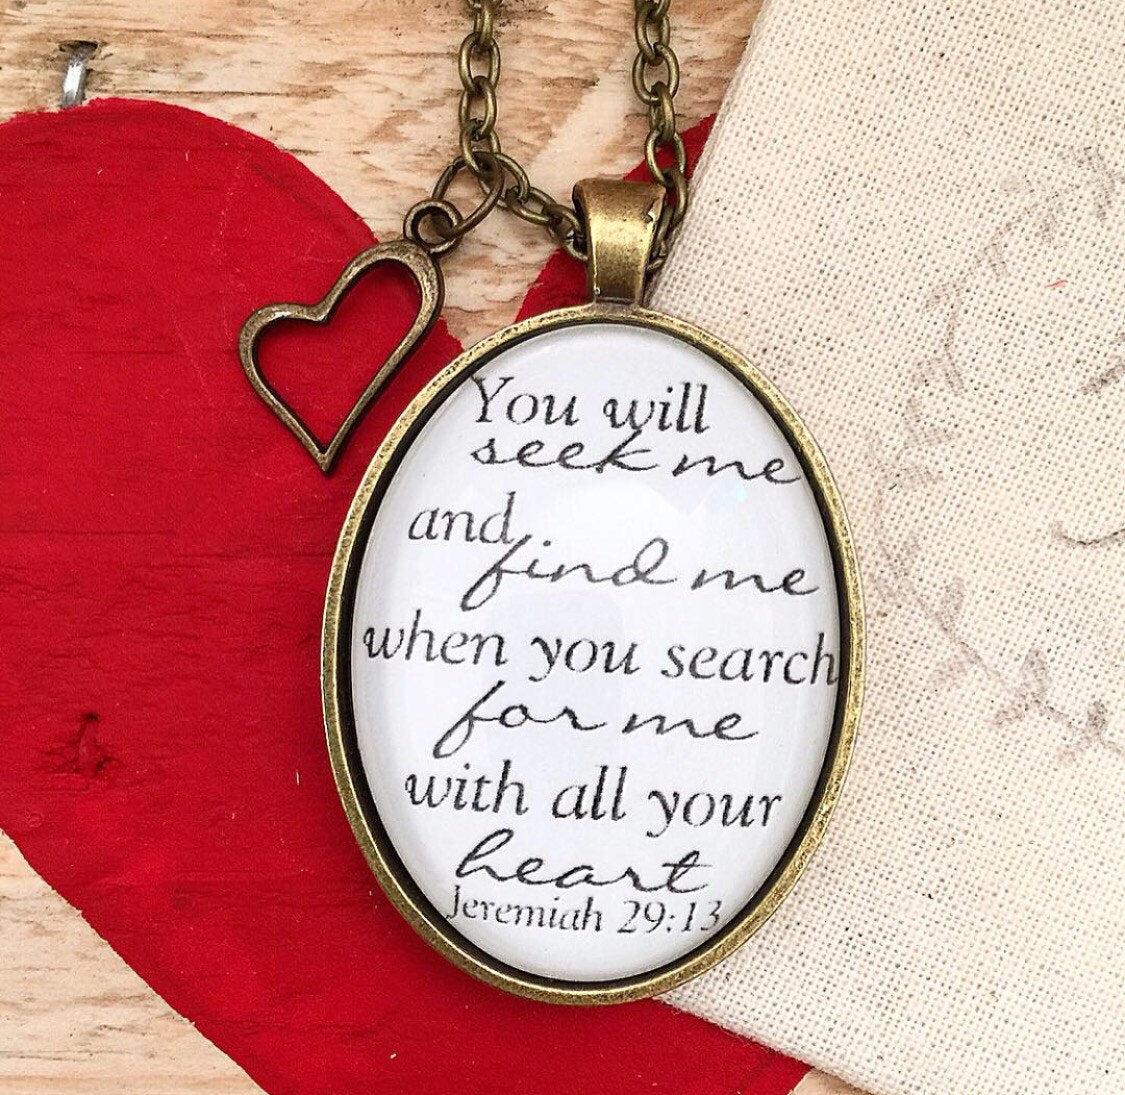 Jeremiah 29:13 Necklace - Redeemed Jewelry